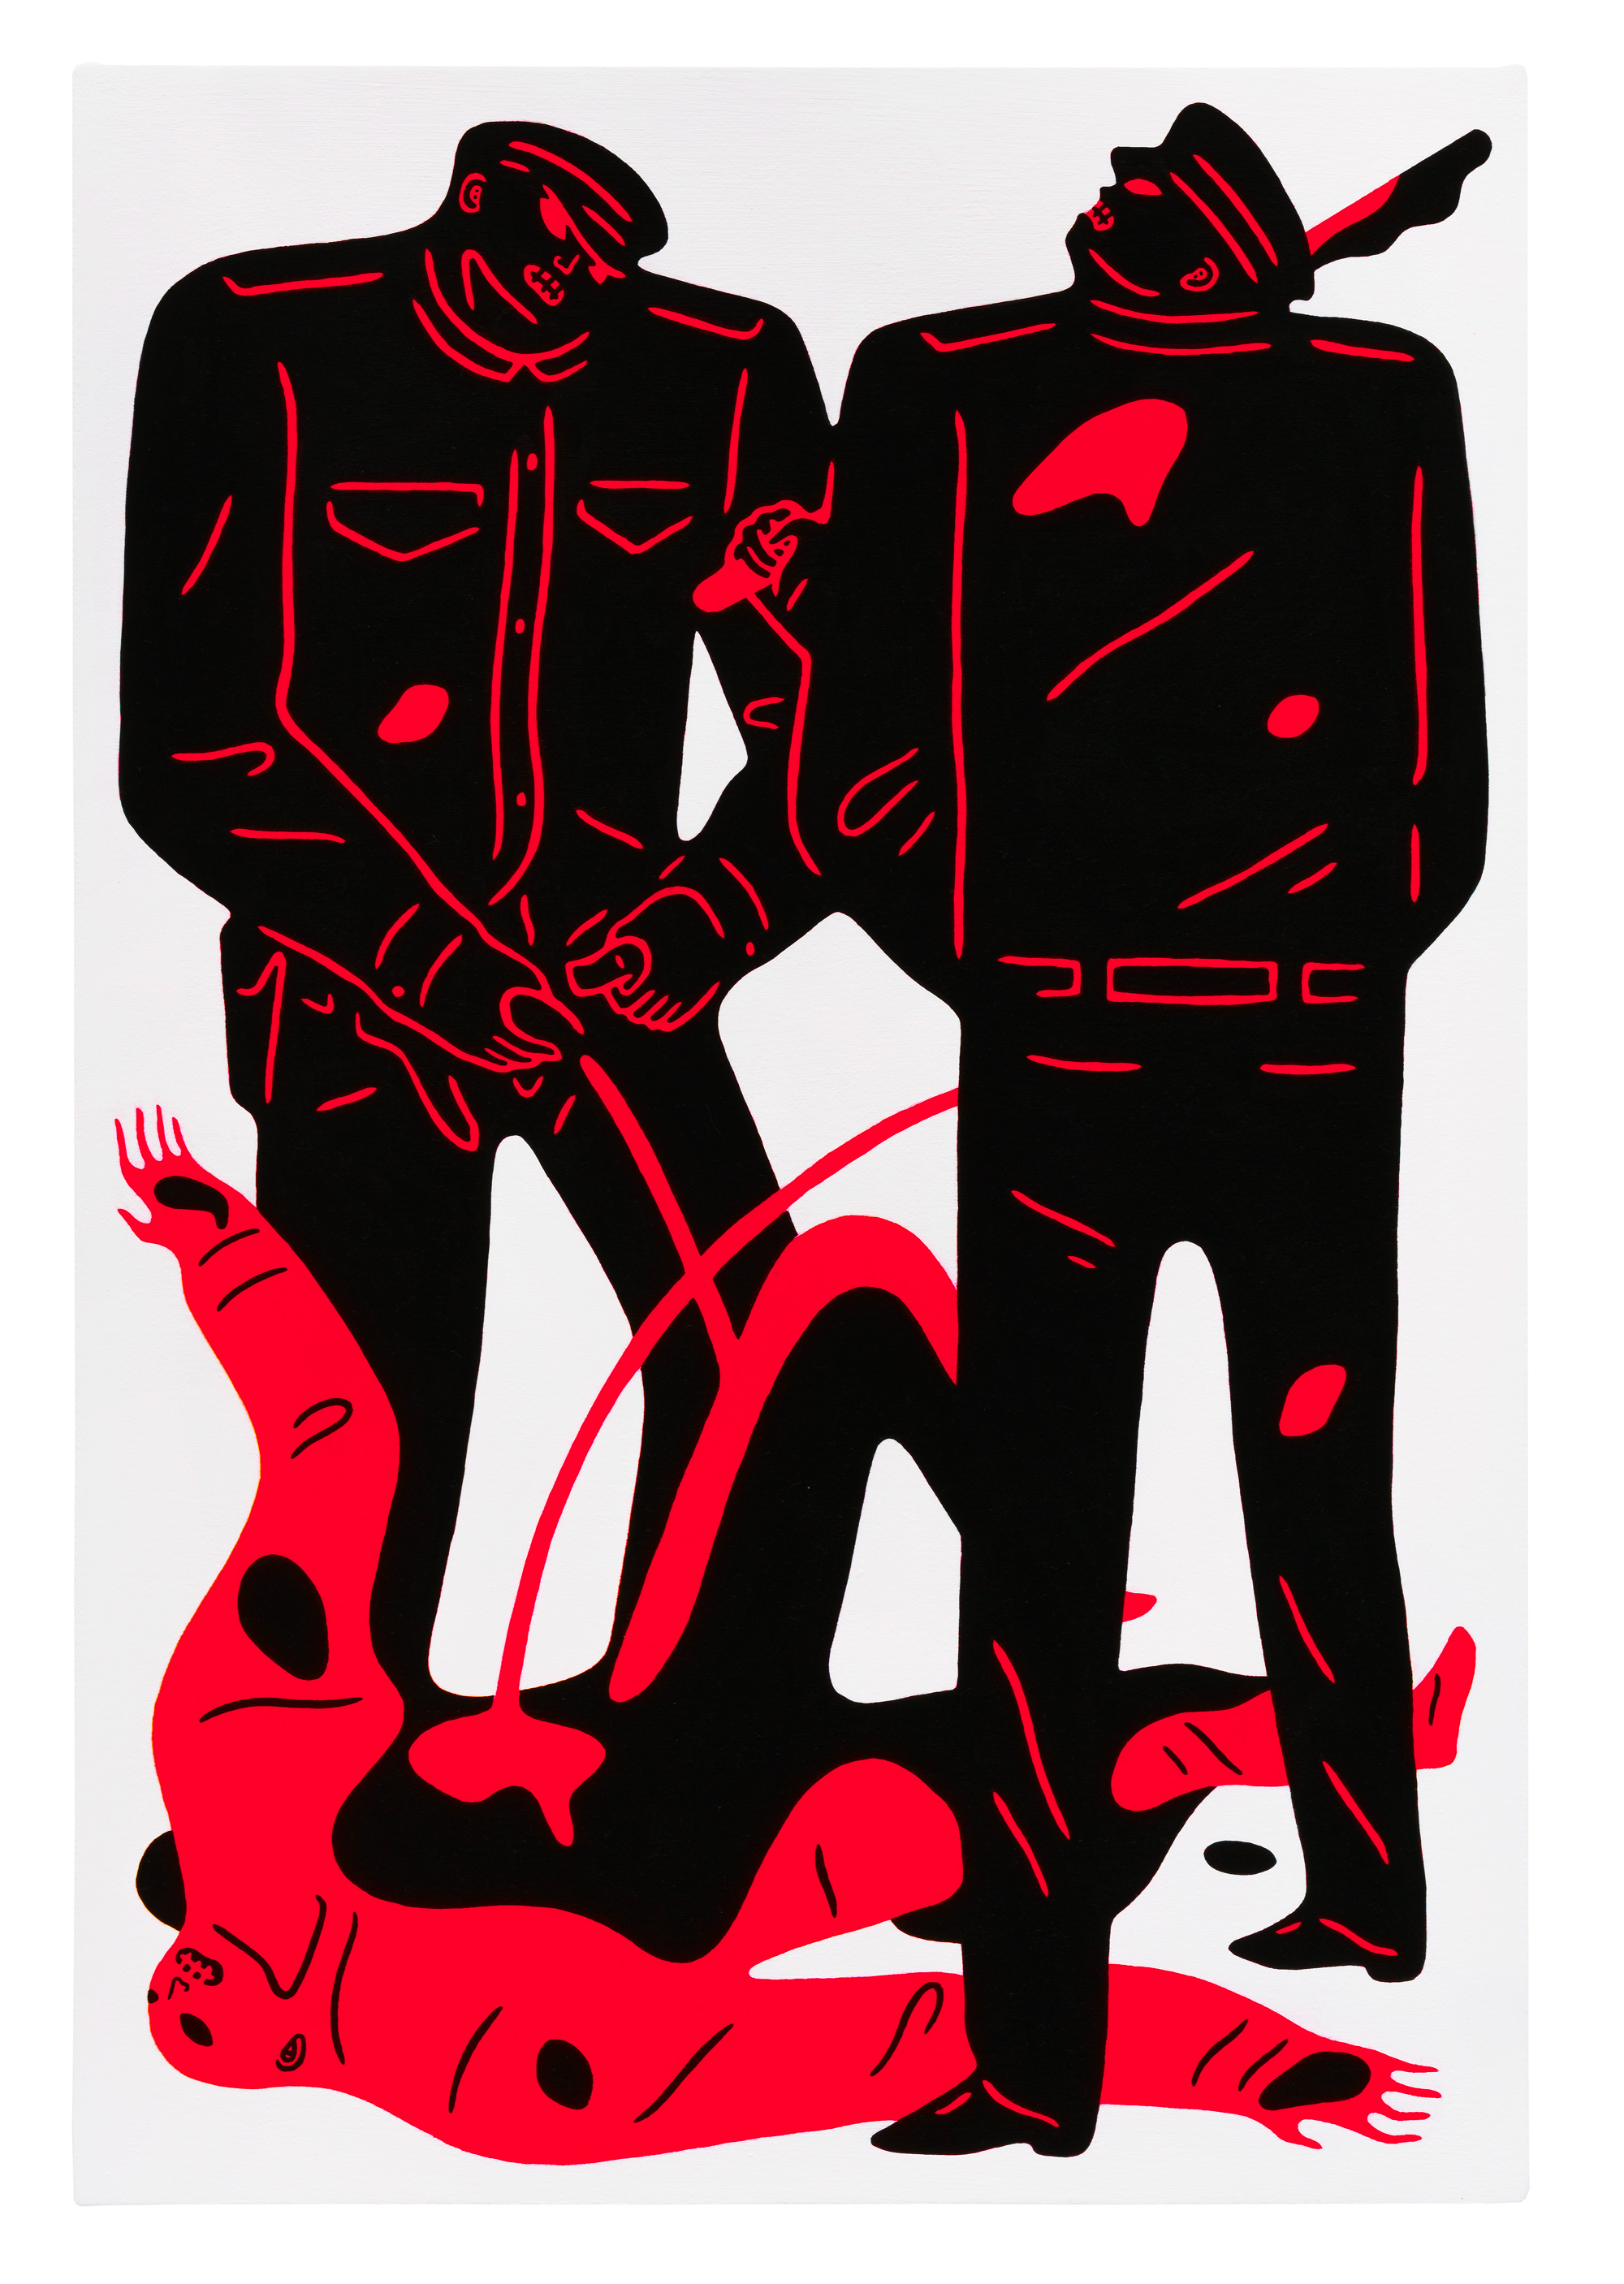 The-Pissers-cleon-peterson-amadeus